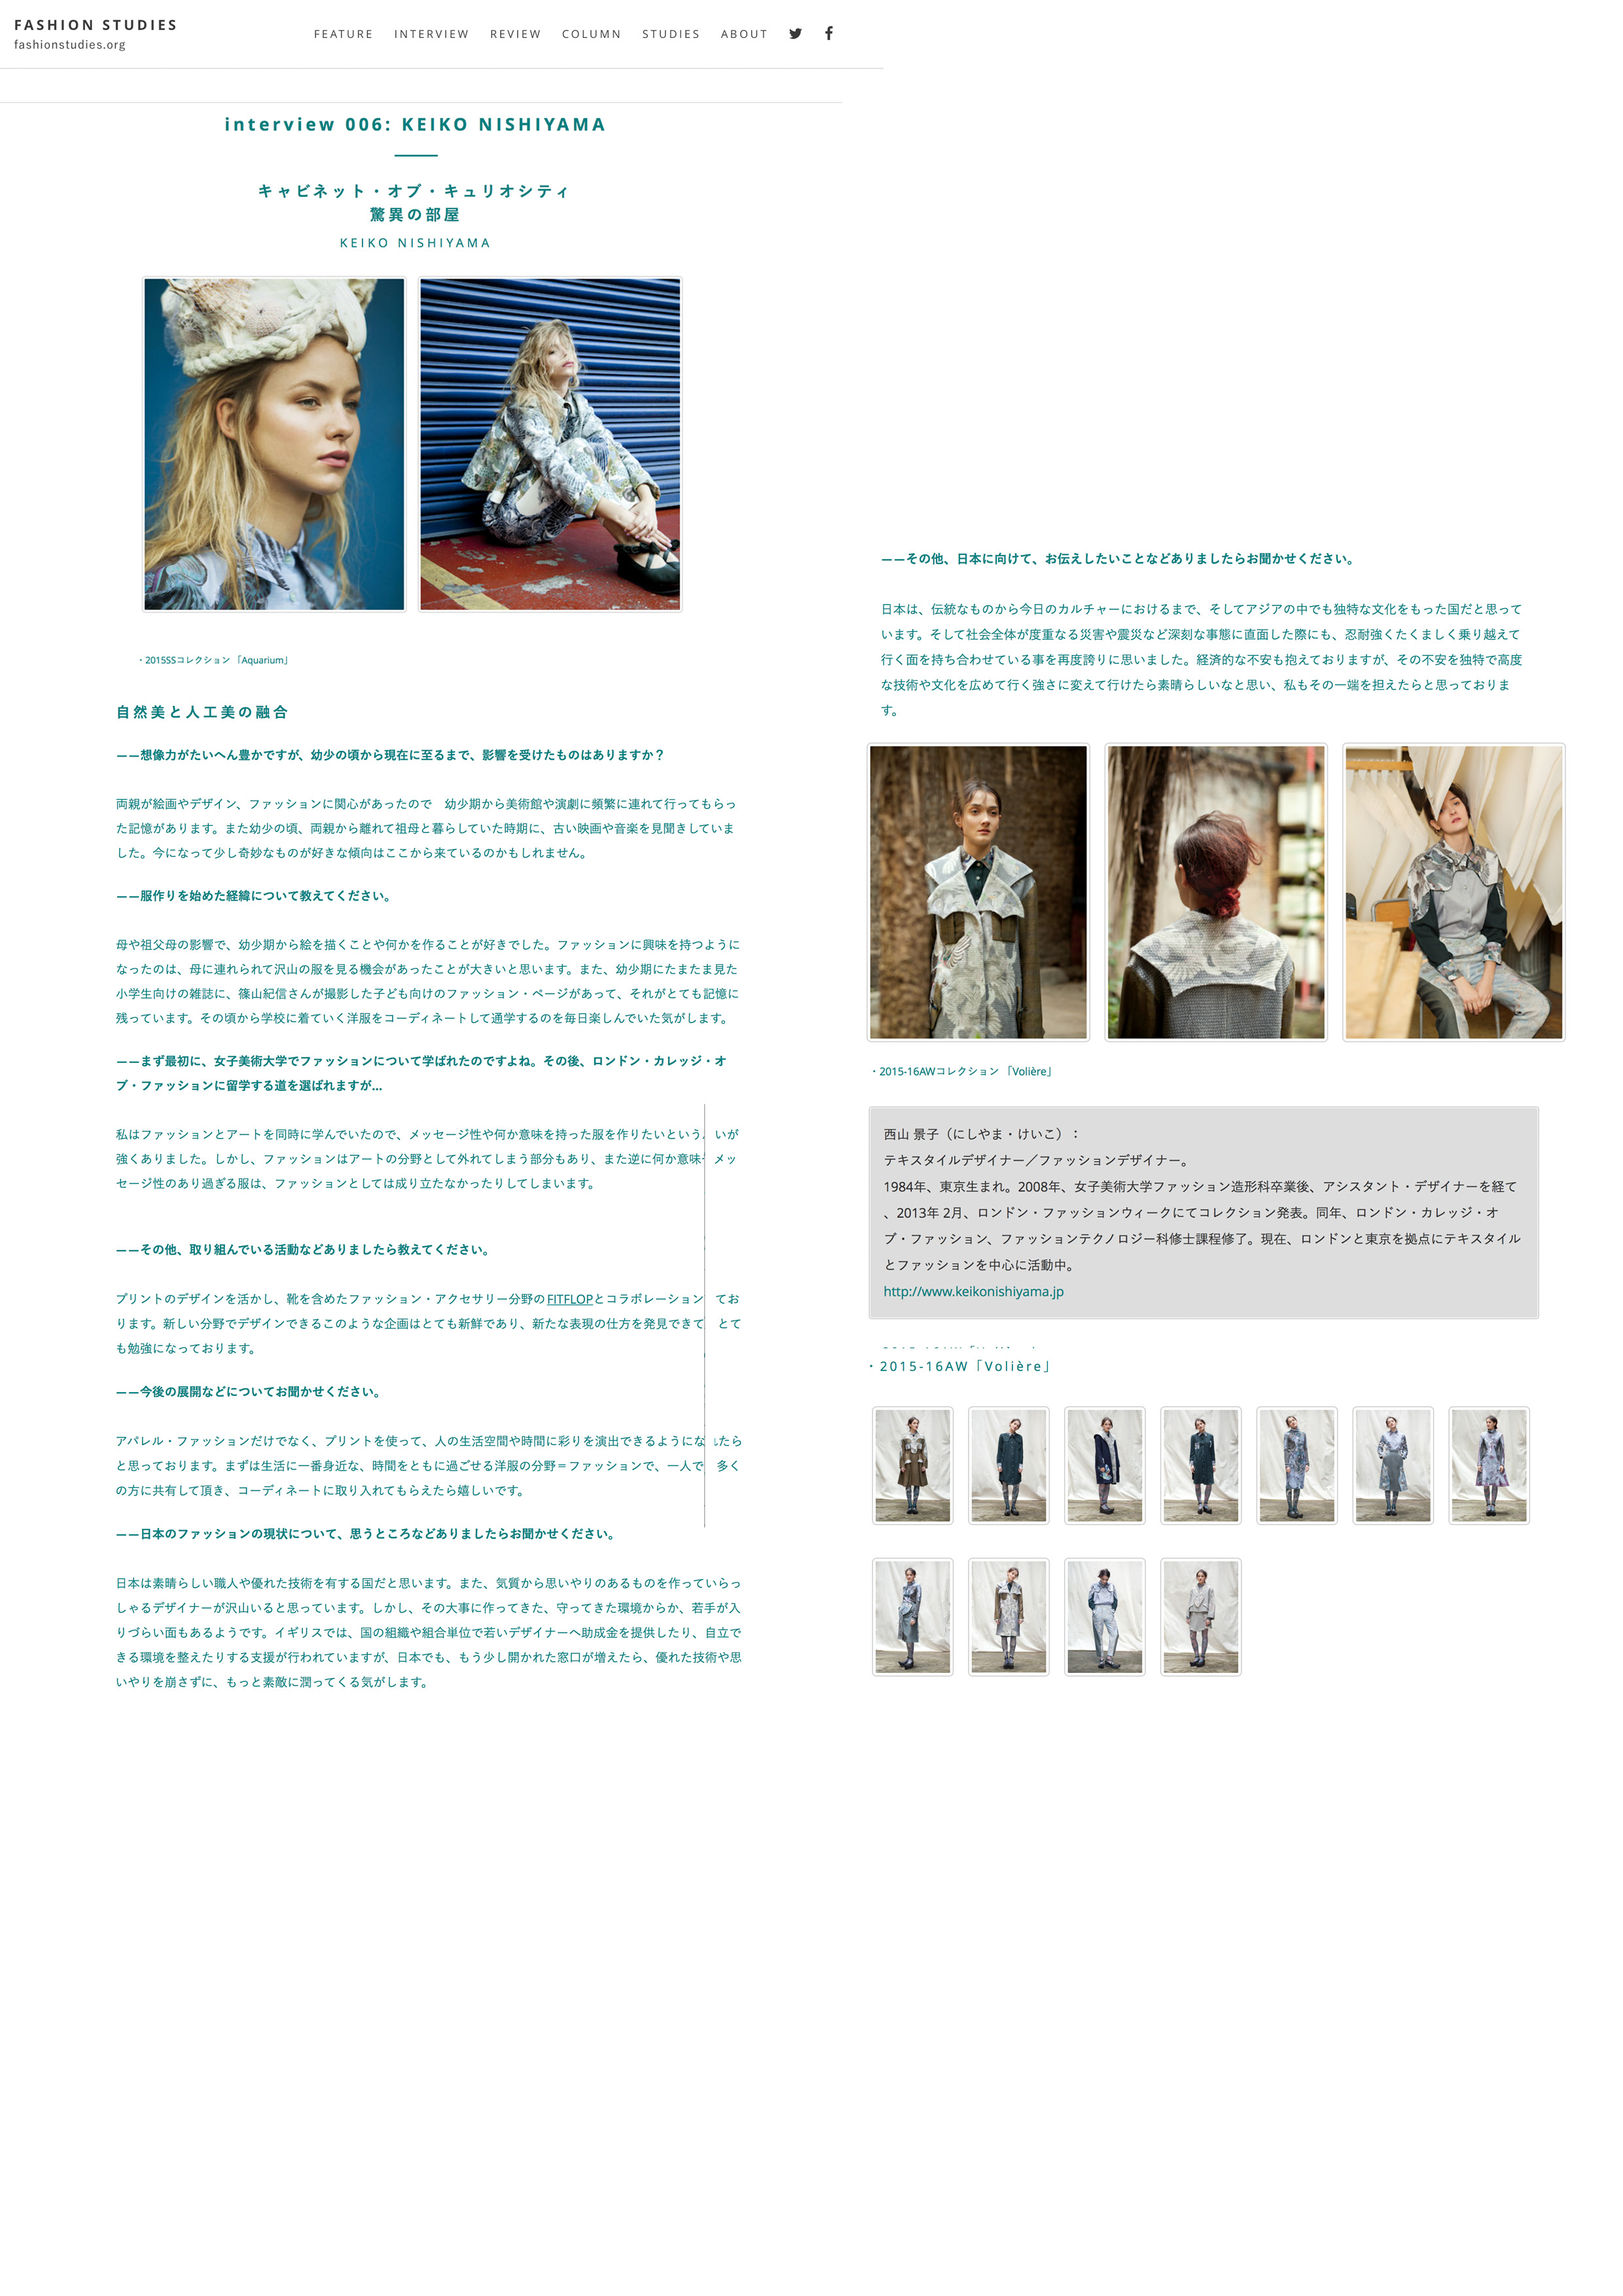 FASHION STUDIES - September 2015